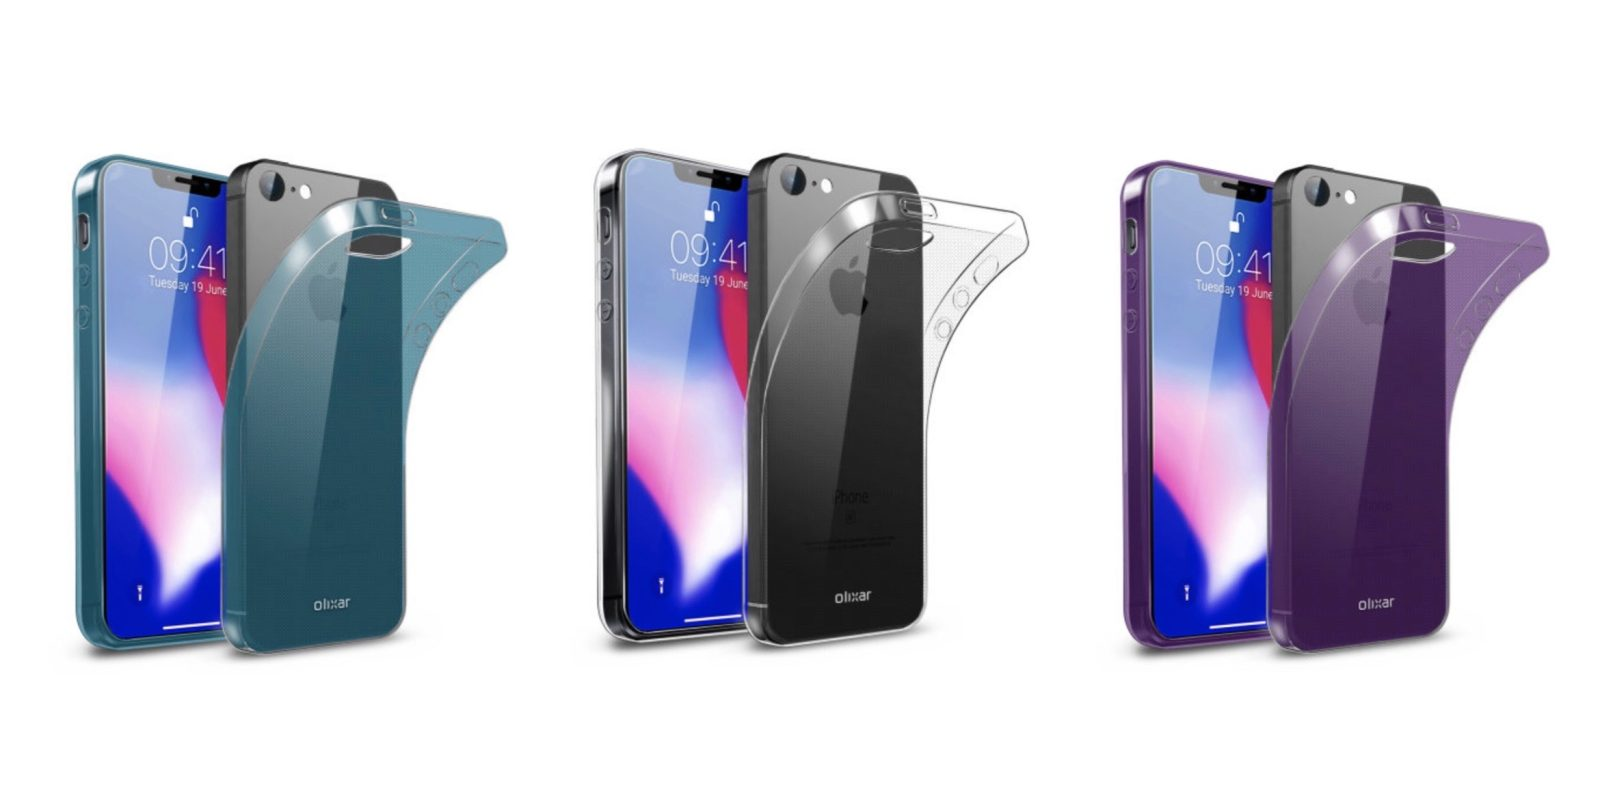 finest selection b47a0 df4a8 iPhone SE 2 render with iPhone X-style display now shown off from ...